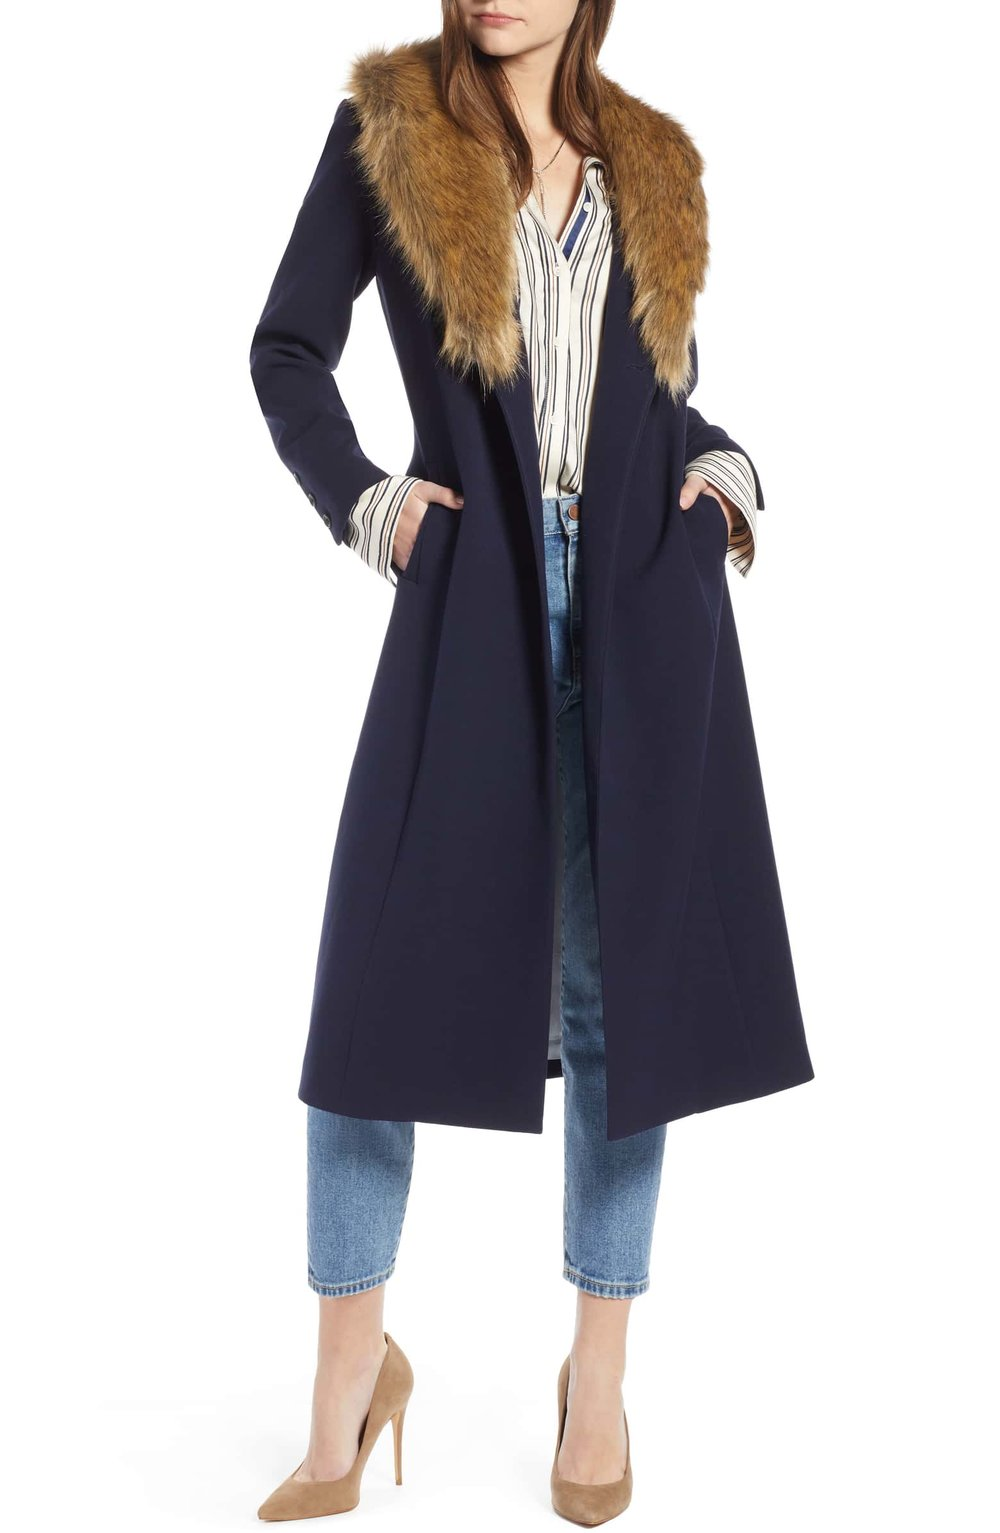 Faux Fur Collar Midi Coat - $159 | Something Navy Vegan Wool-Free + Vegan Faux Fur